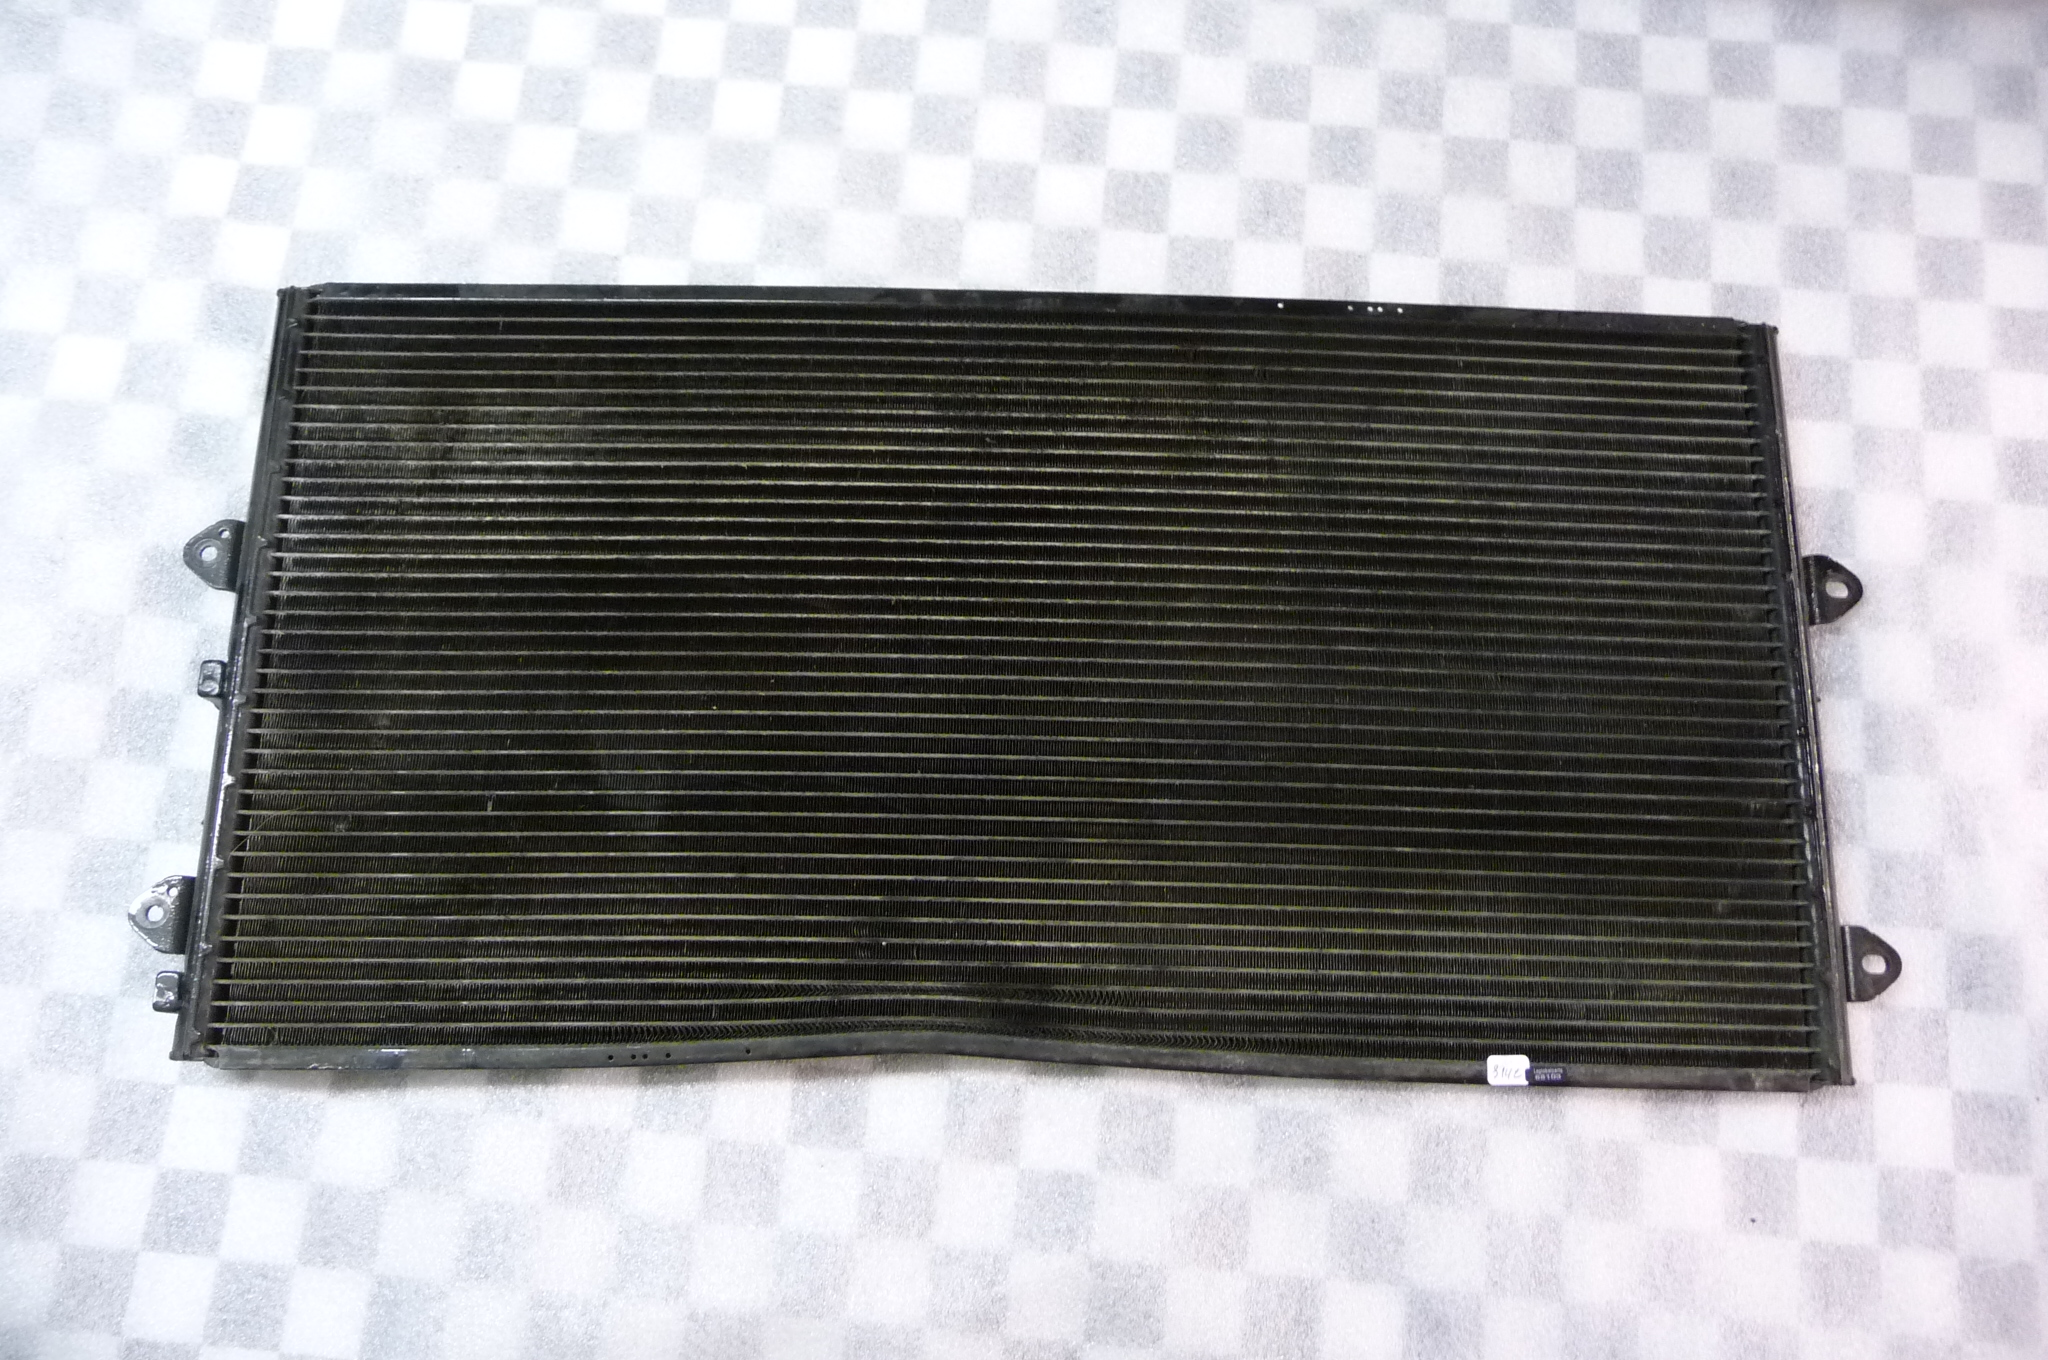 Bentley Continental GT GTC Flying Spur Air Conditioning Condenser 3W0820411E  - Used Auto Parts Store | LA Global Parts